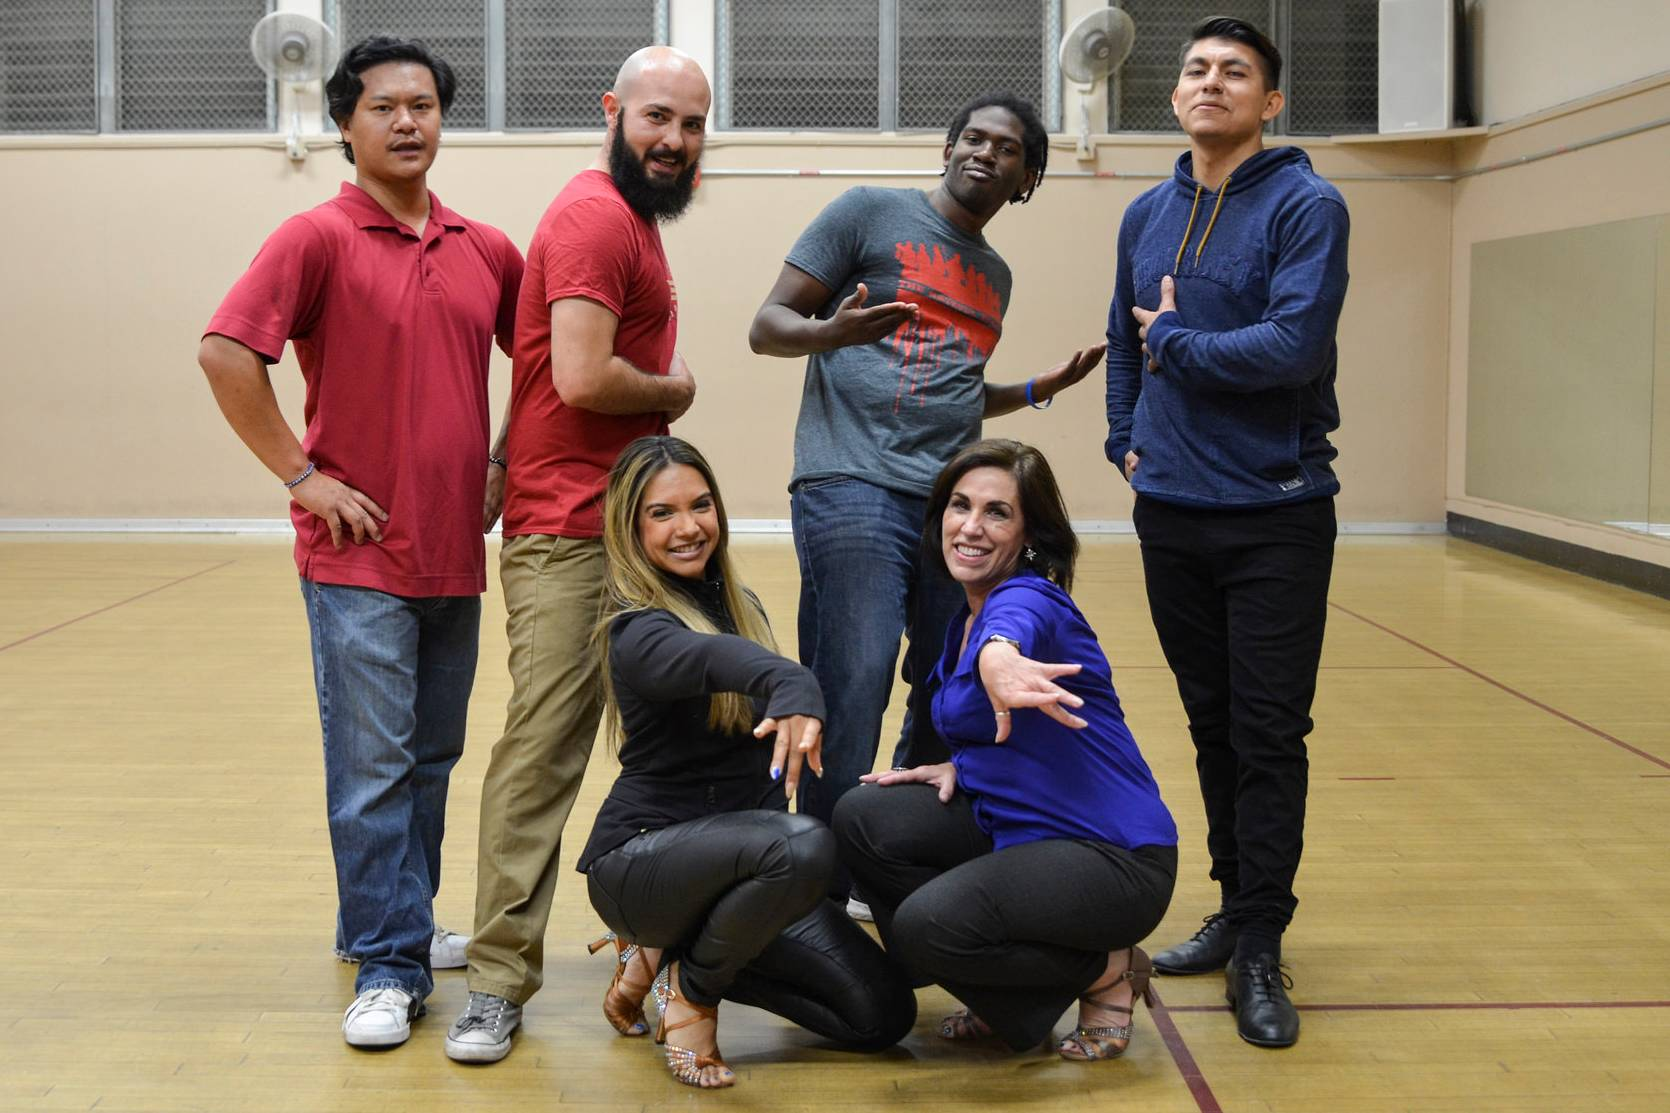 Student Veteran at San Diego Mesa College have been finding a new sense of community on campus this semester through free social dancing classes on campus.